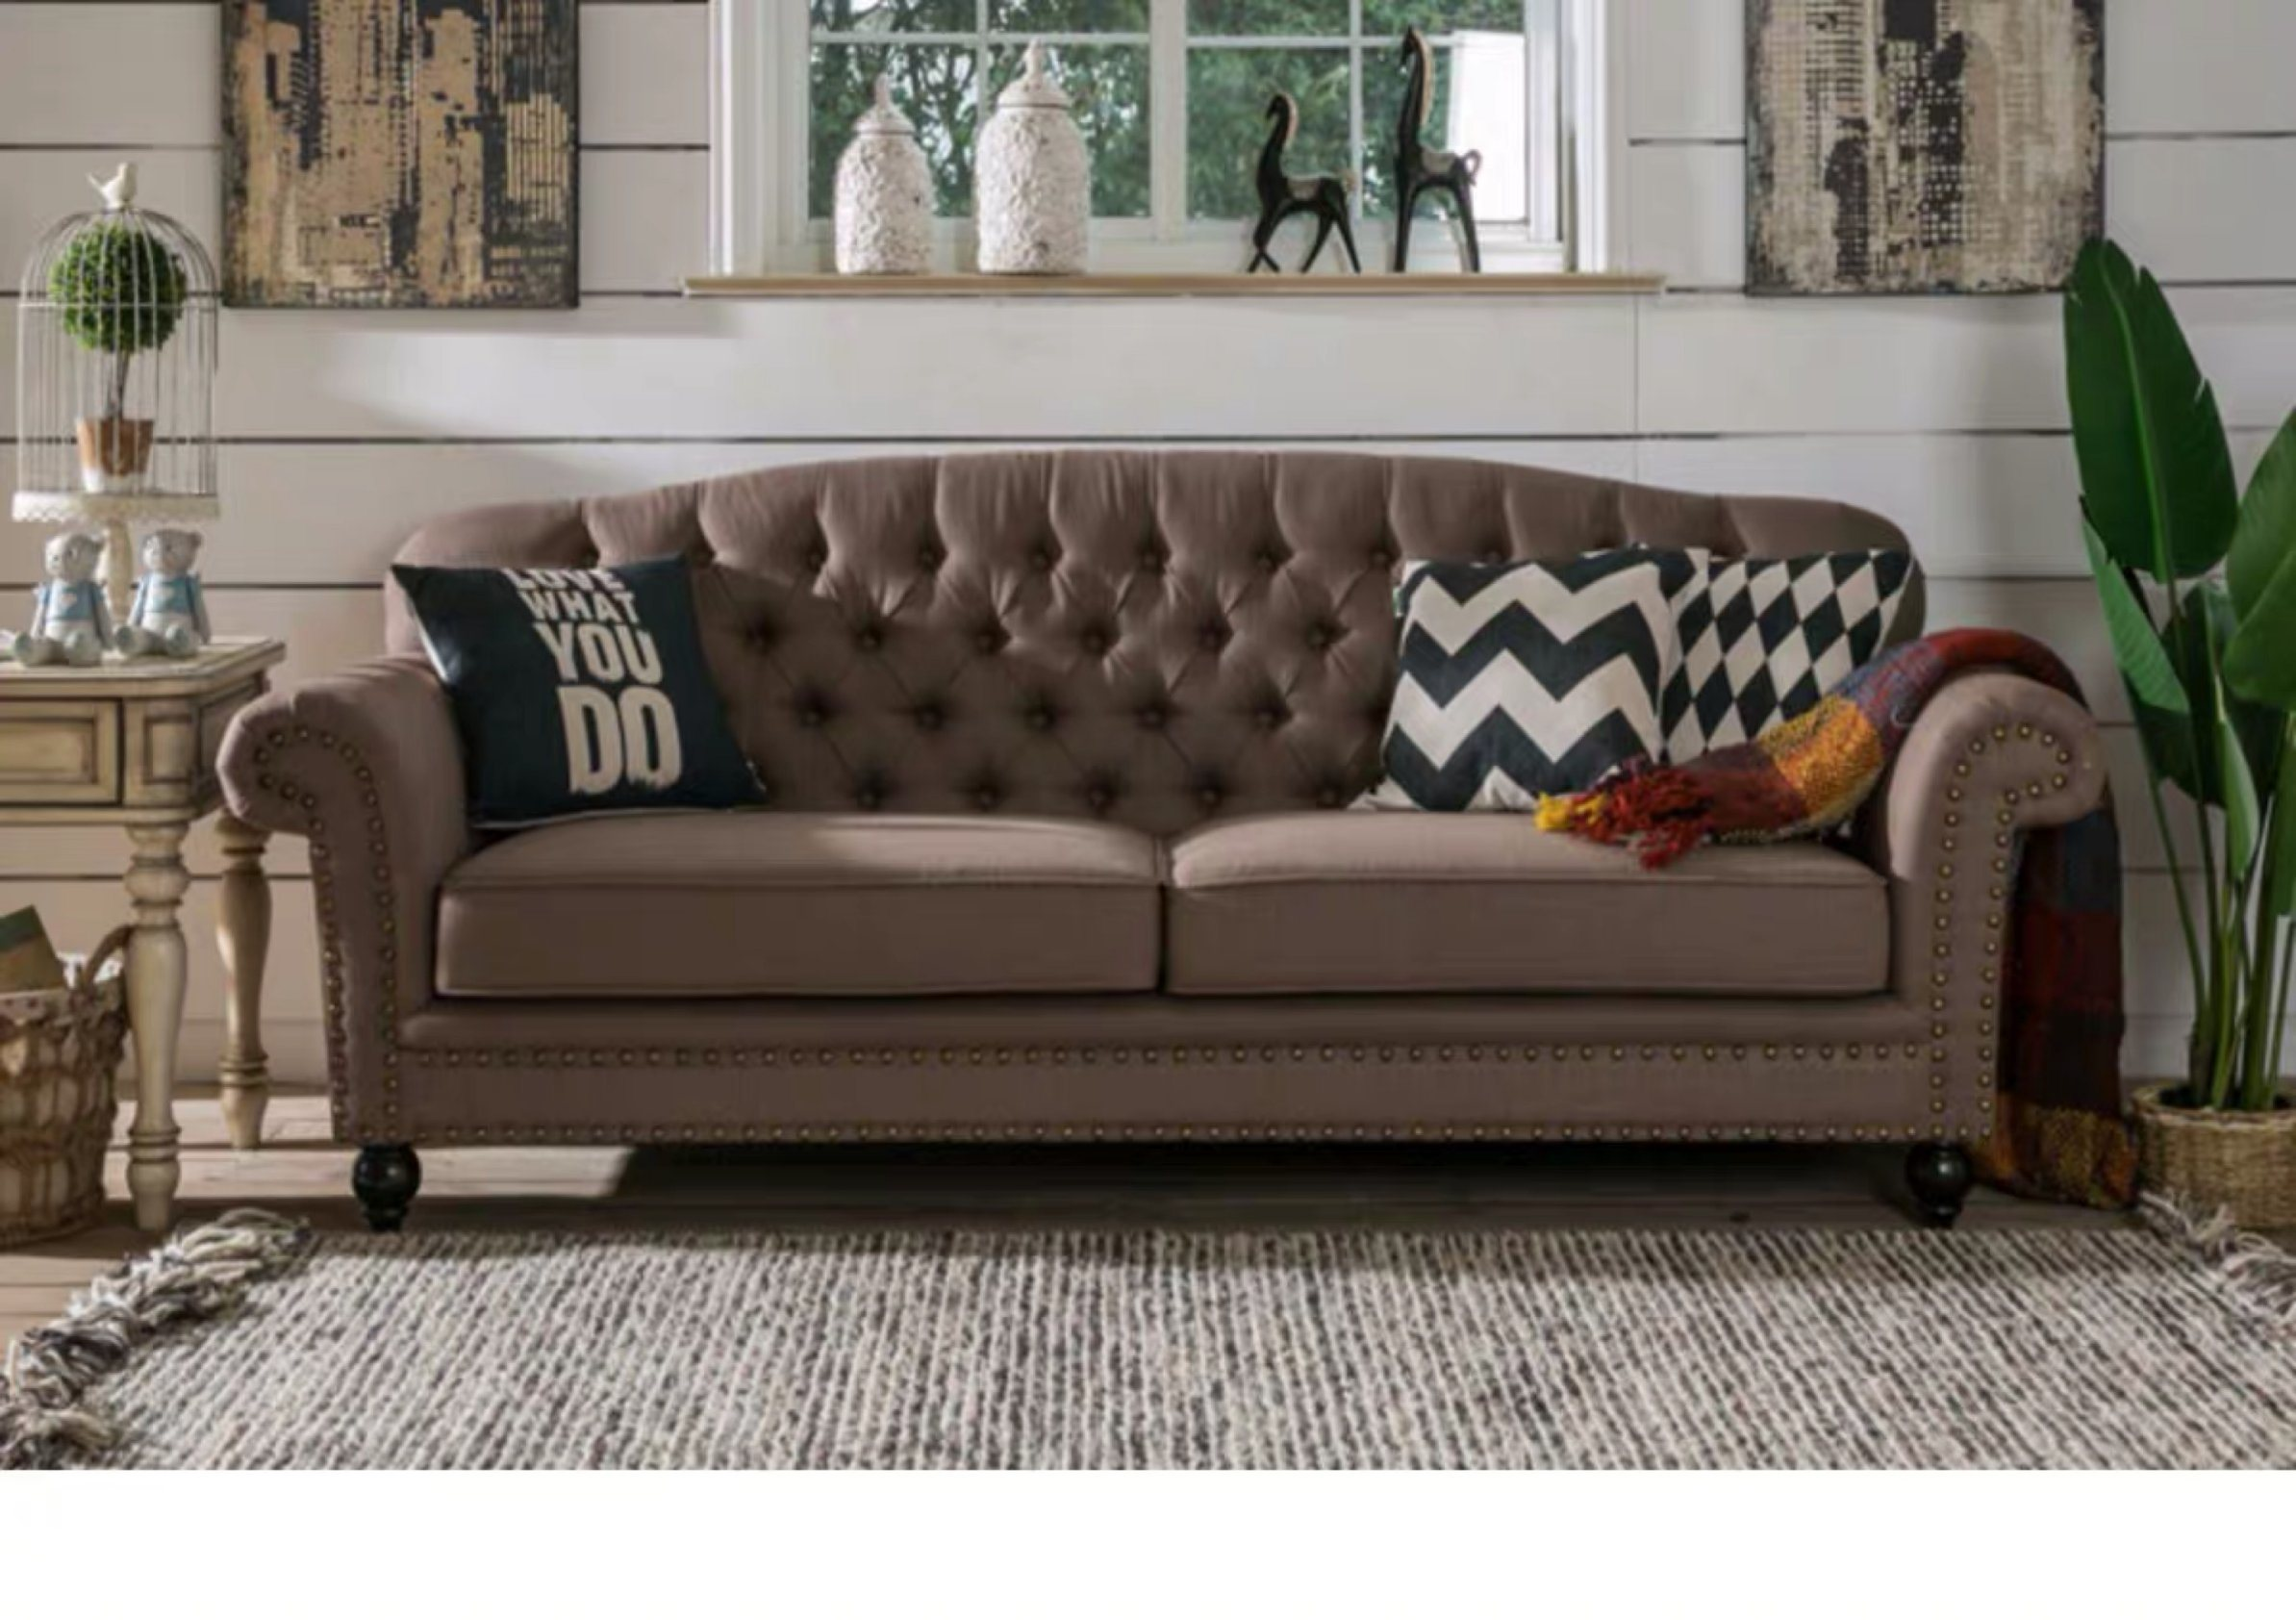 Picture of: China 2020 Modern Furniture Design 3 Seater Fabric Sofa For Living Room China Living Room Sofa Leather Sofa